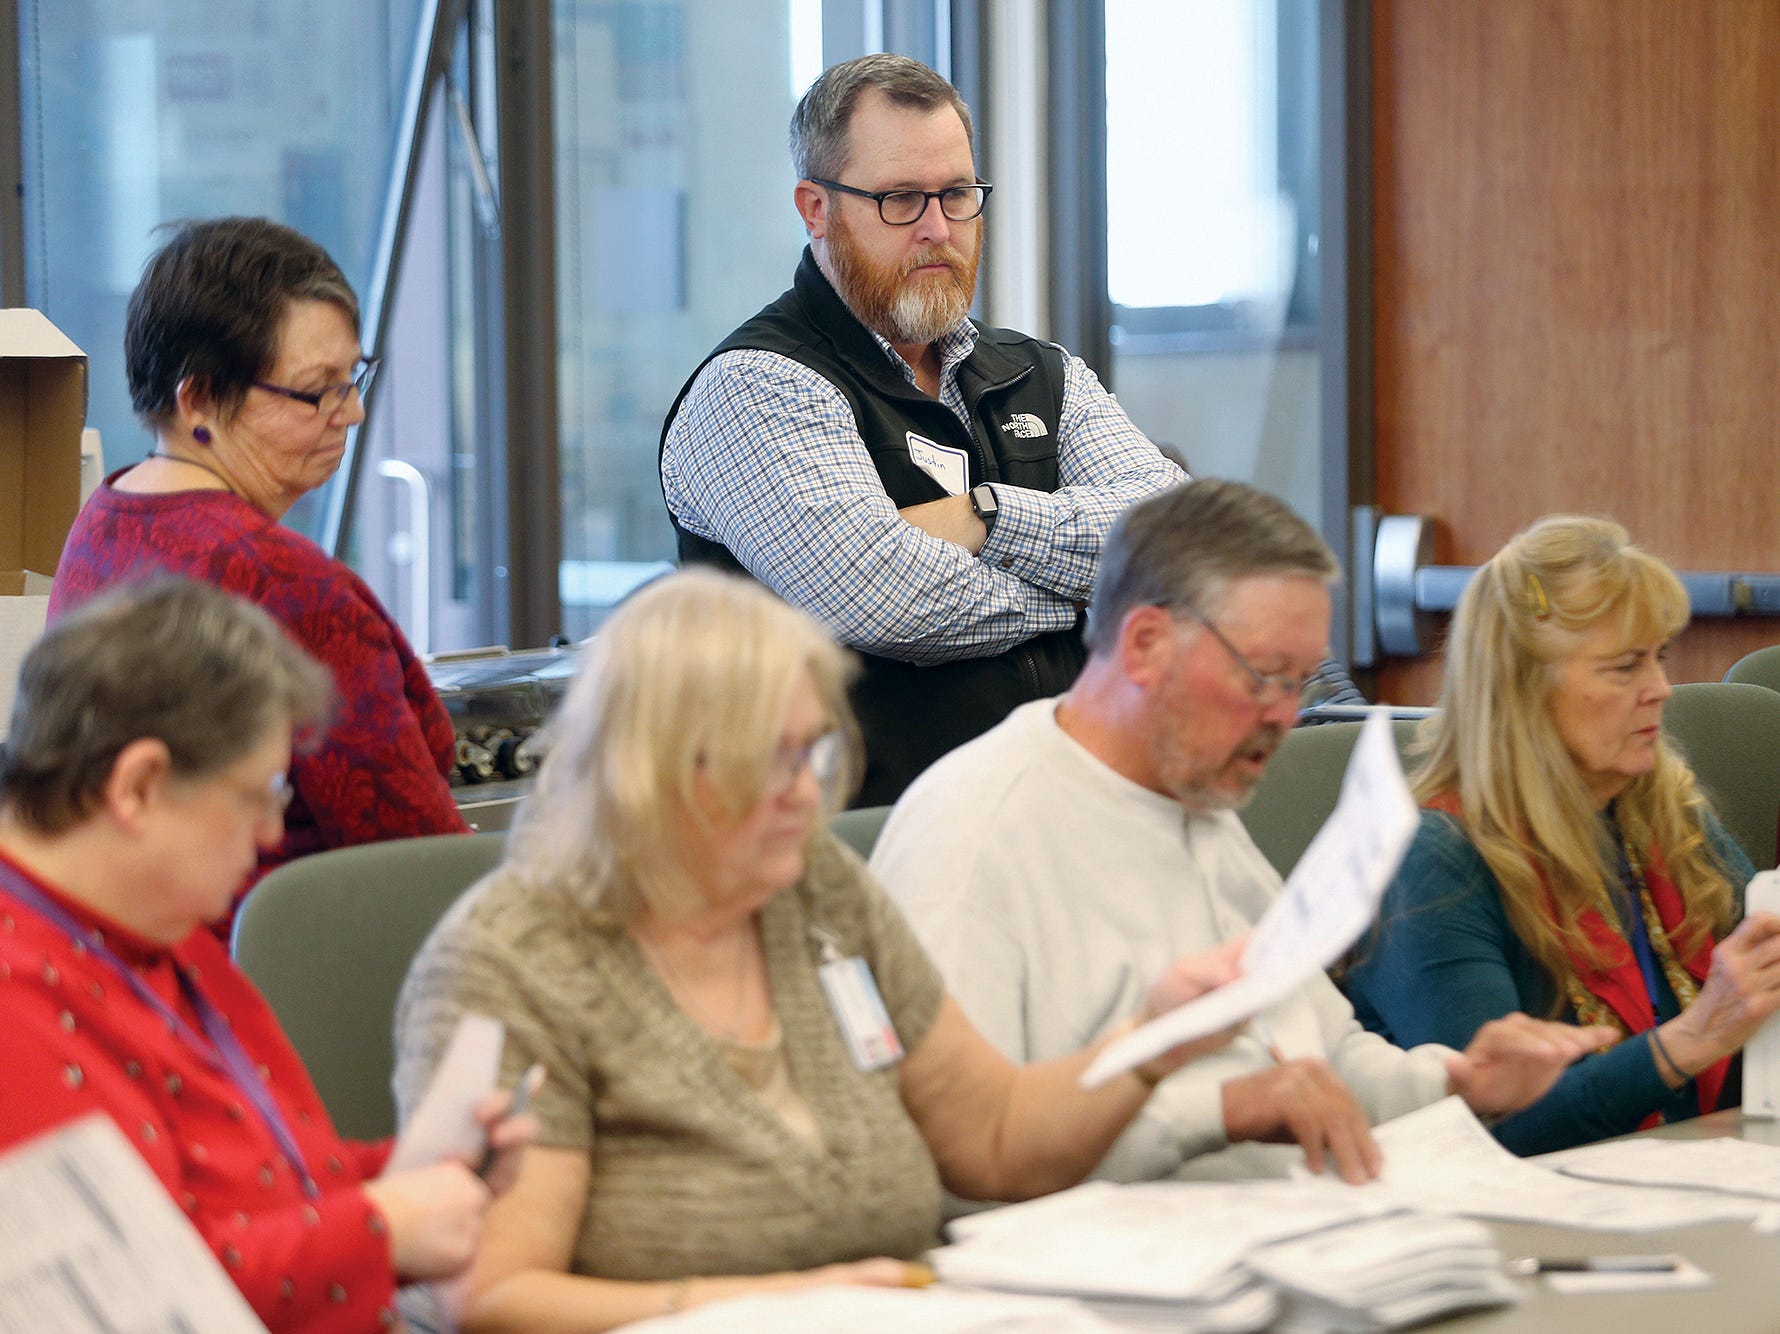 Election observers watch the recount for the 26th LD Senate race  in progress Thursday, December, 6, 2018 at the Kitsap County Elections Department in Port Orchard. Results will be certified on Friday.